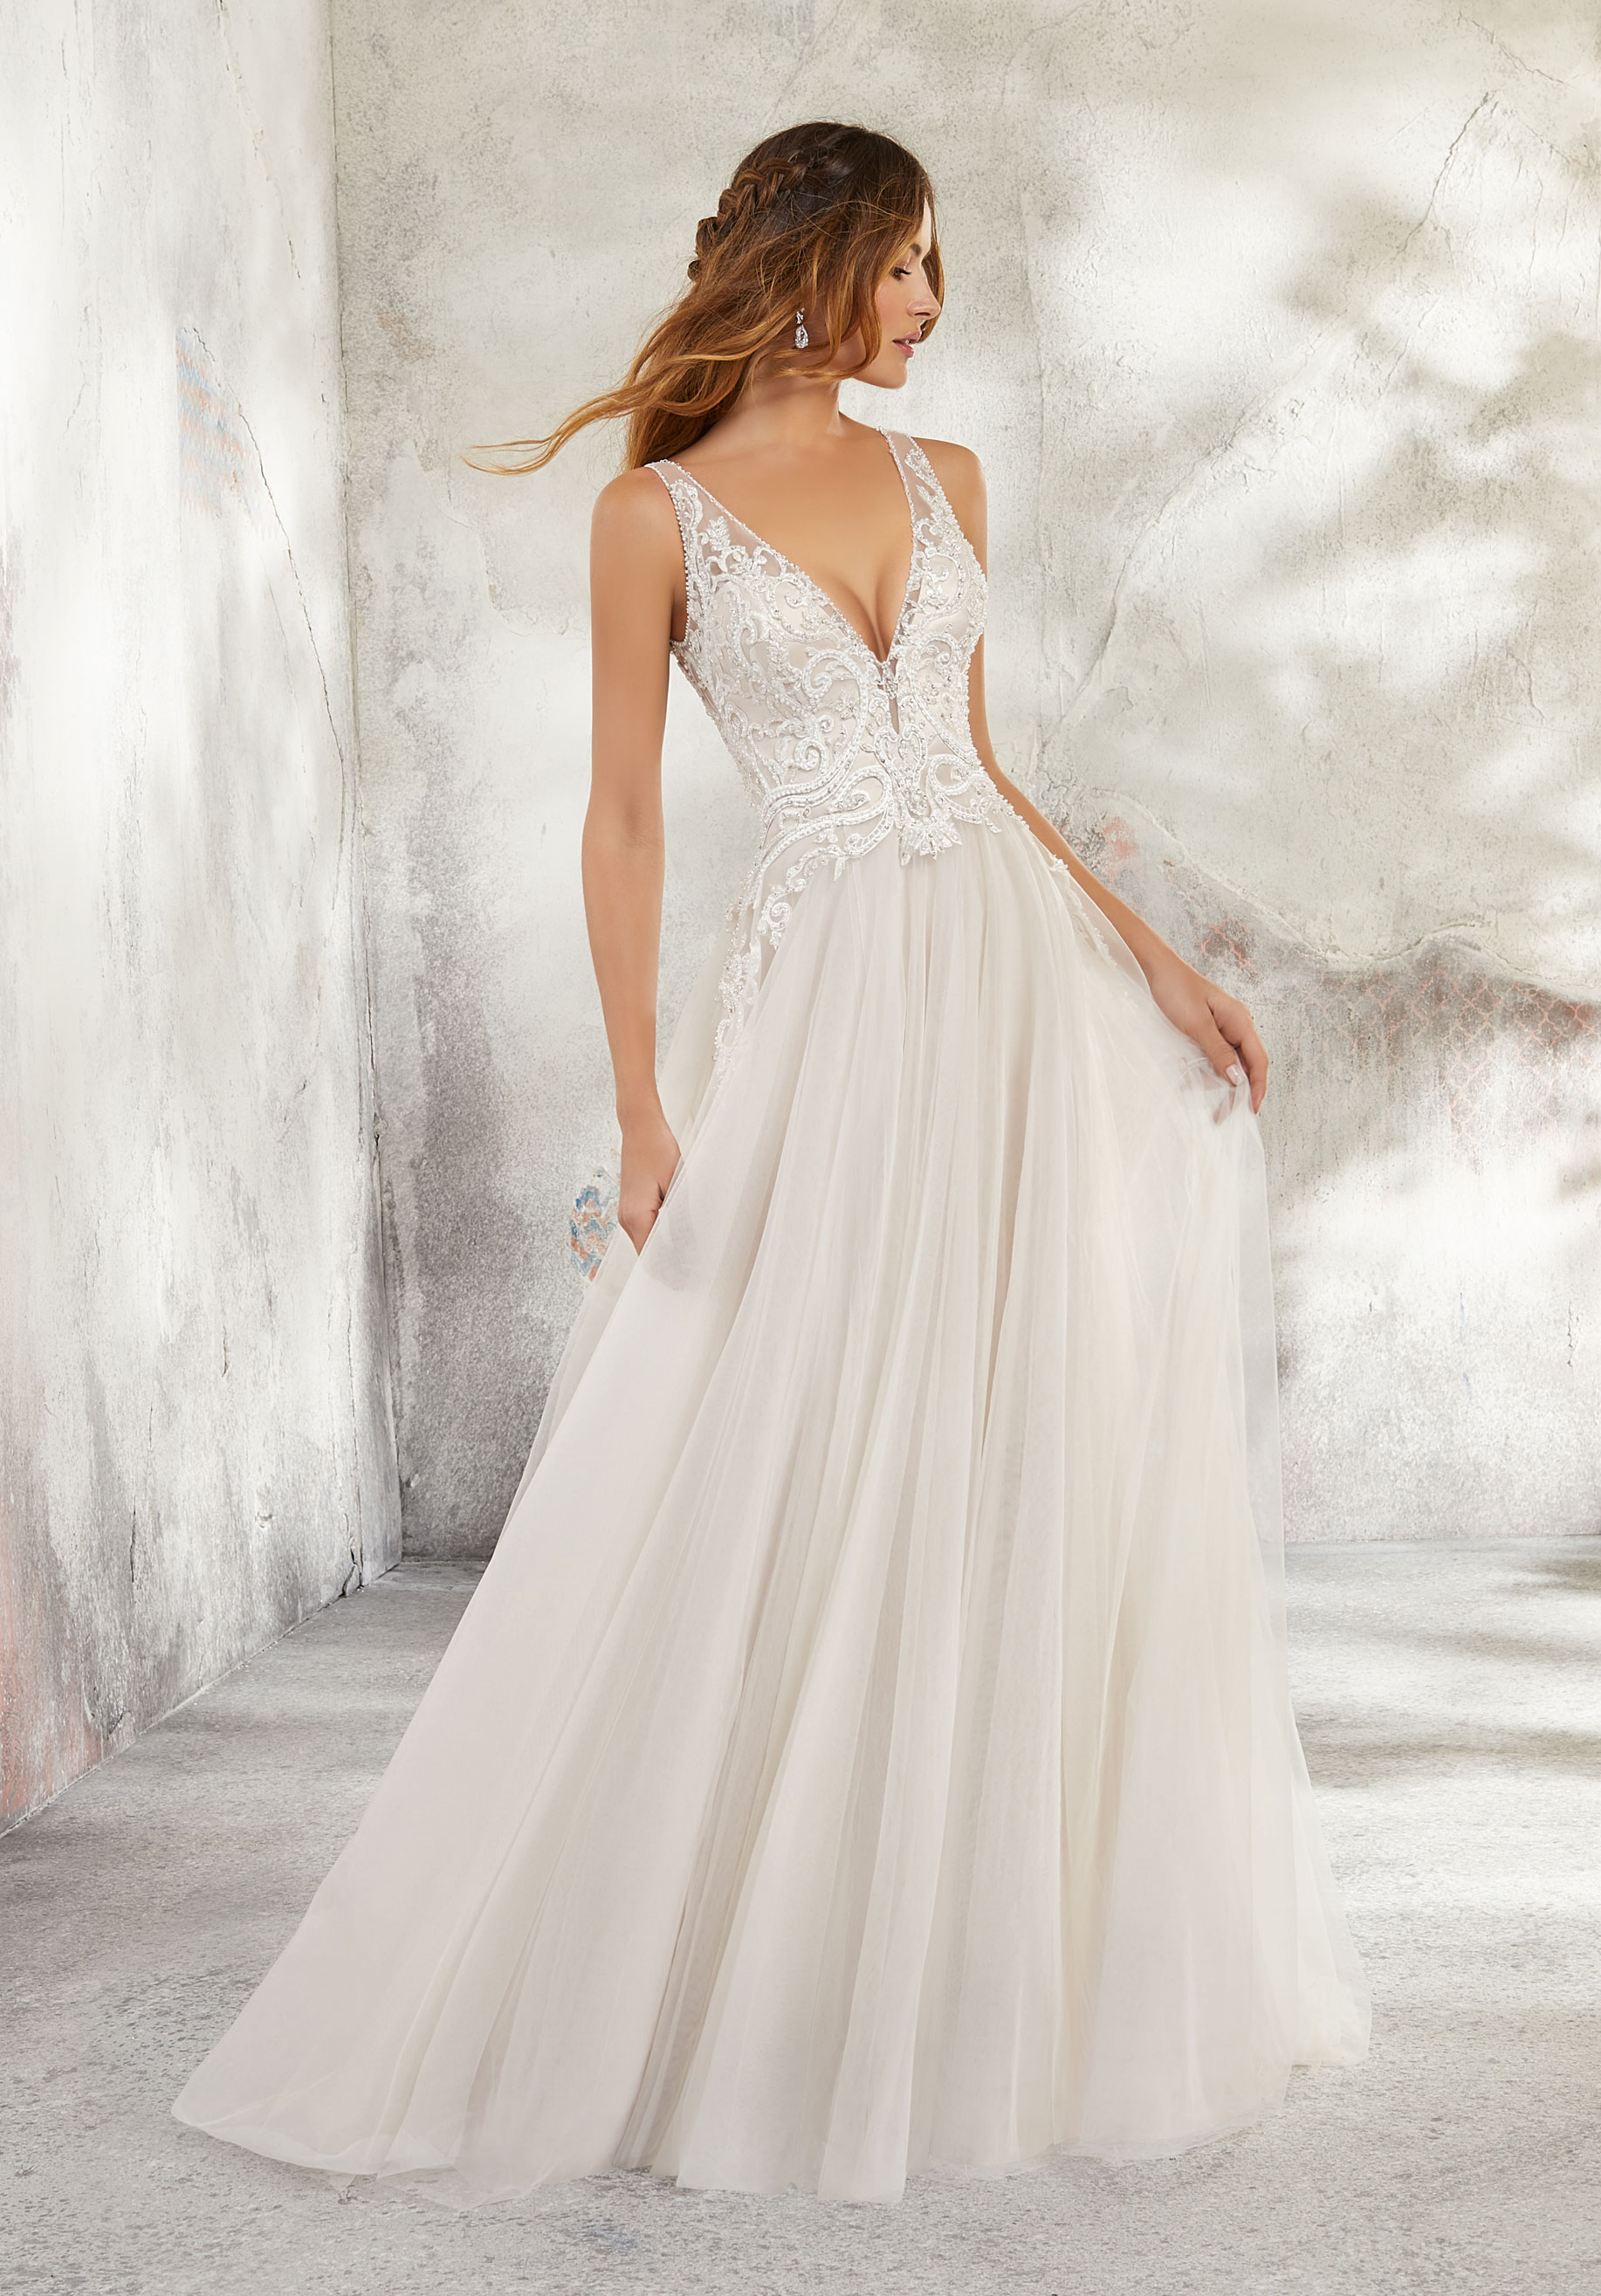 20 dreamy destination wedding dresses weddingsonline willowby by watters stockist include alice may bridal in dublin memories the bridal boutique based in dublin cork mk bridal boutique in meath and junglespirit Gallery